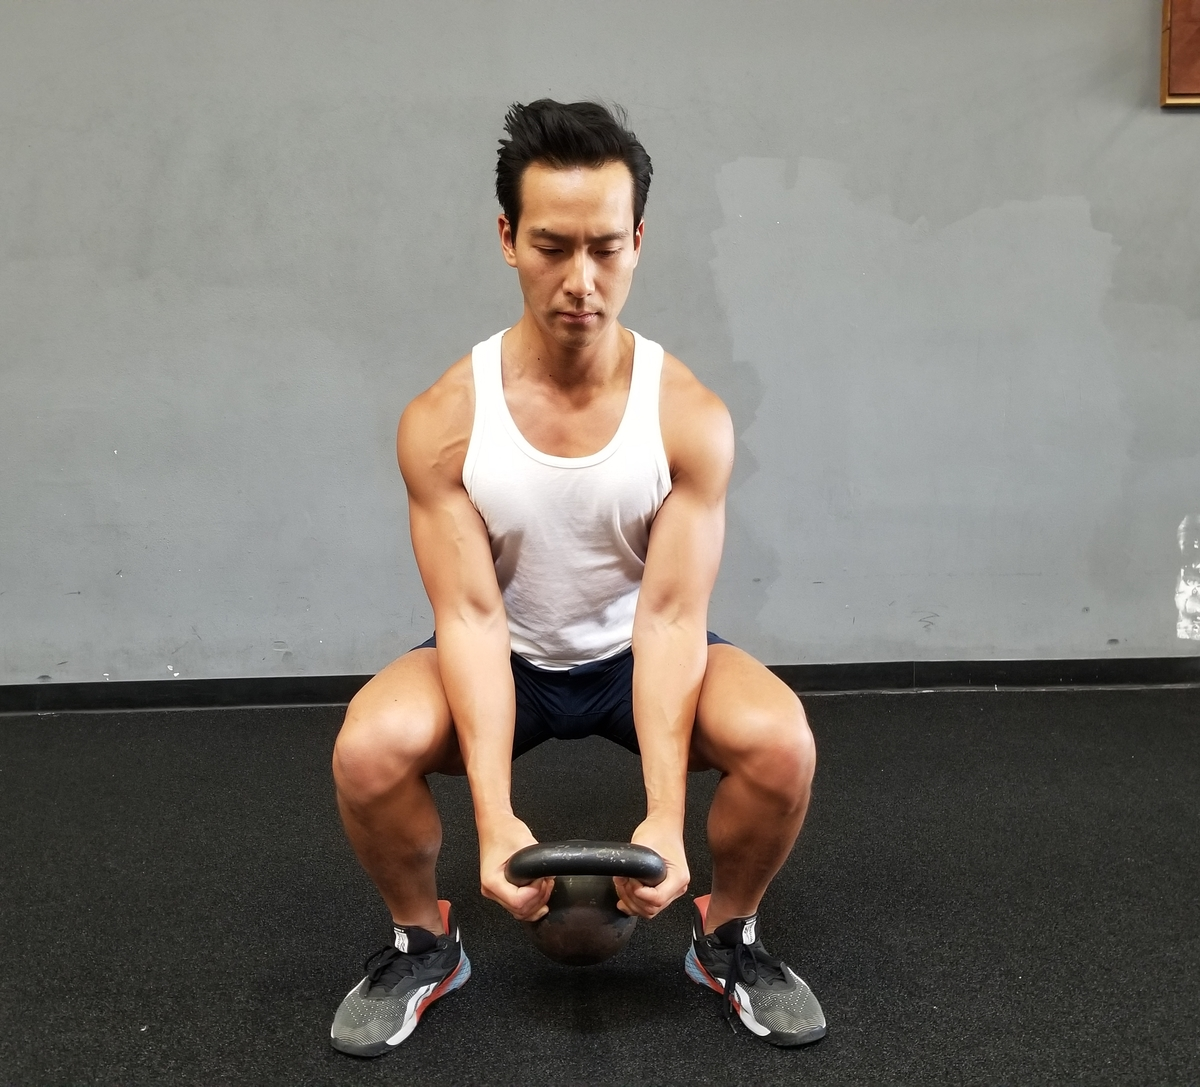 3 Kettlebell Goblet squat and reverse curl